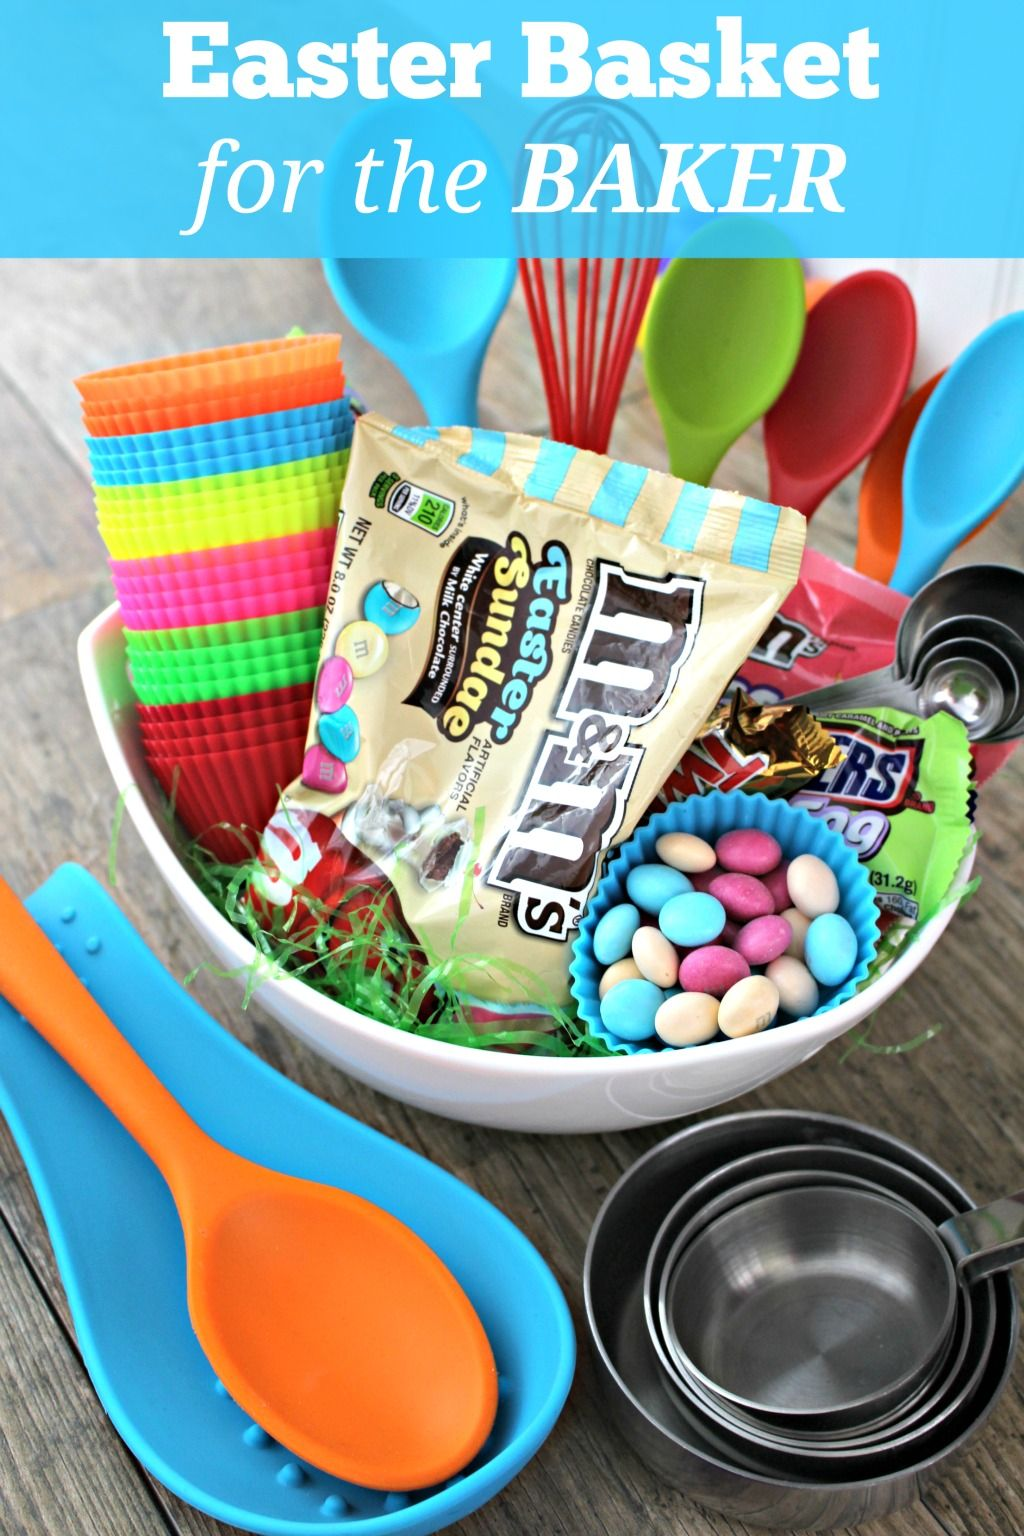 Whos ready for easter make your easter a sweetereaster with easter basket for a baker negle Choice Image